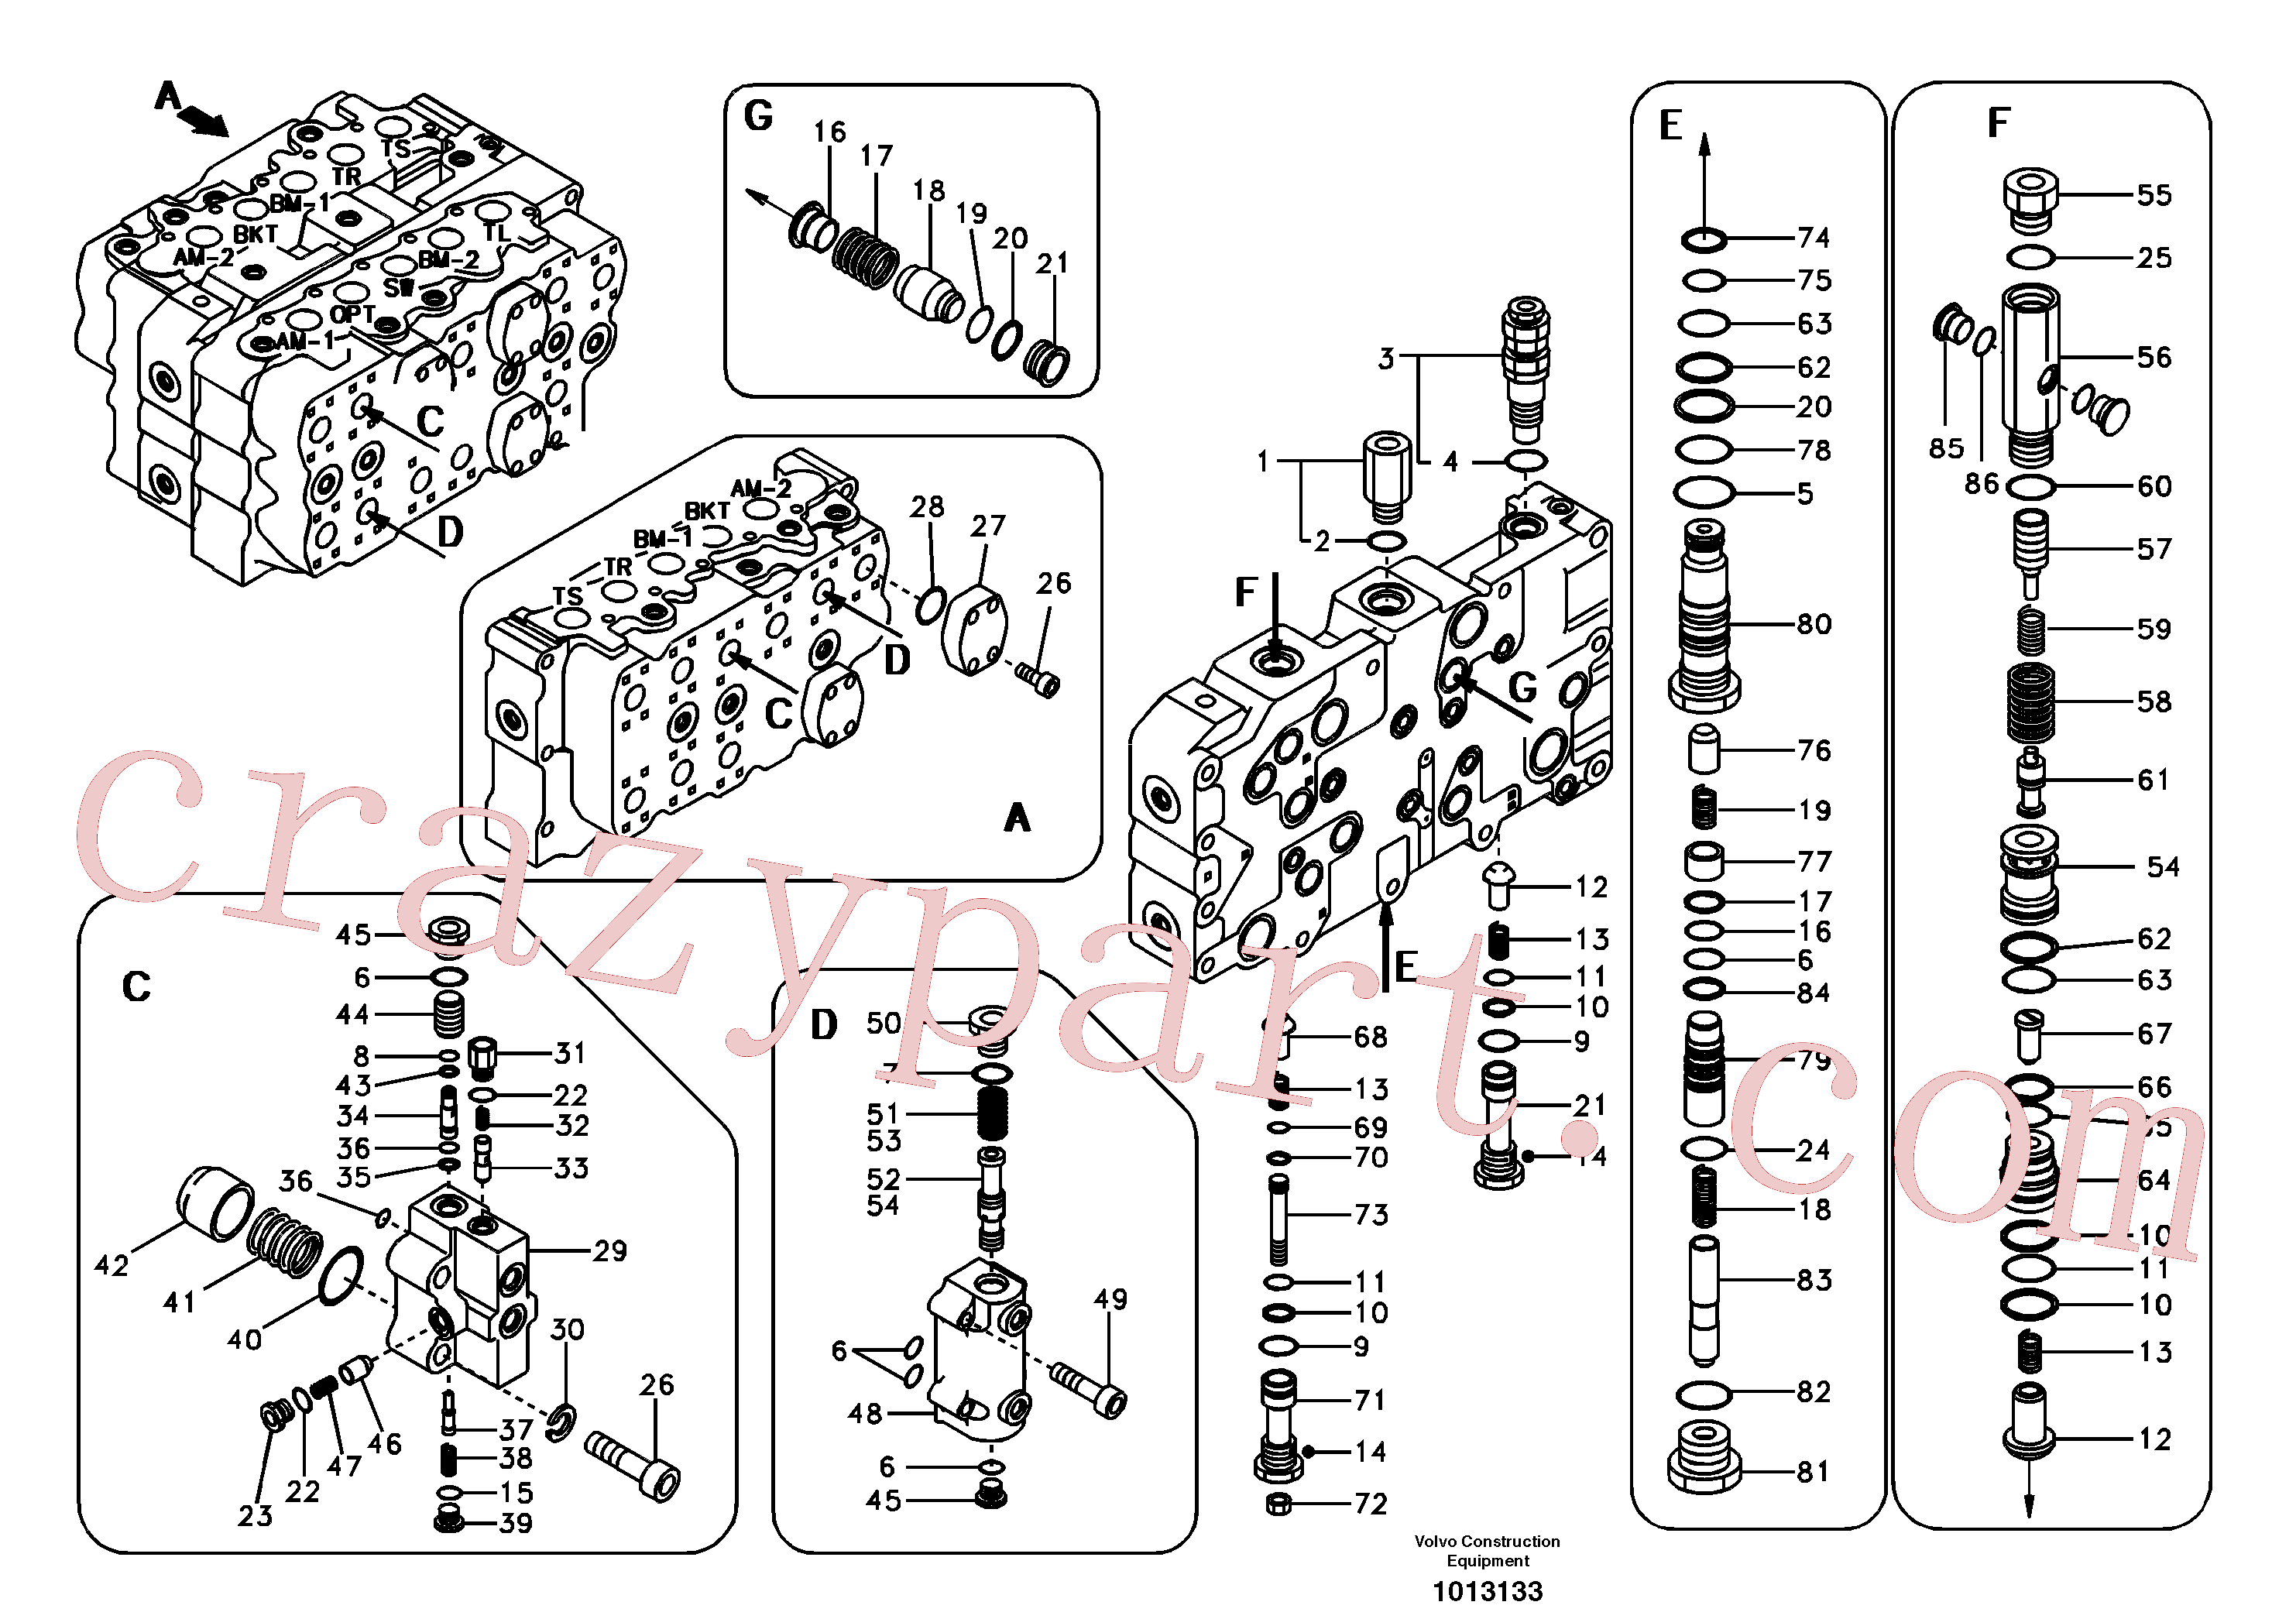 SA7273-10630 for Volvo Main control valve, boom and dipper arm holding.(1013133 assembly)